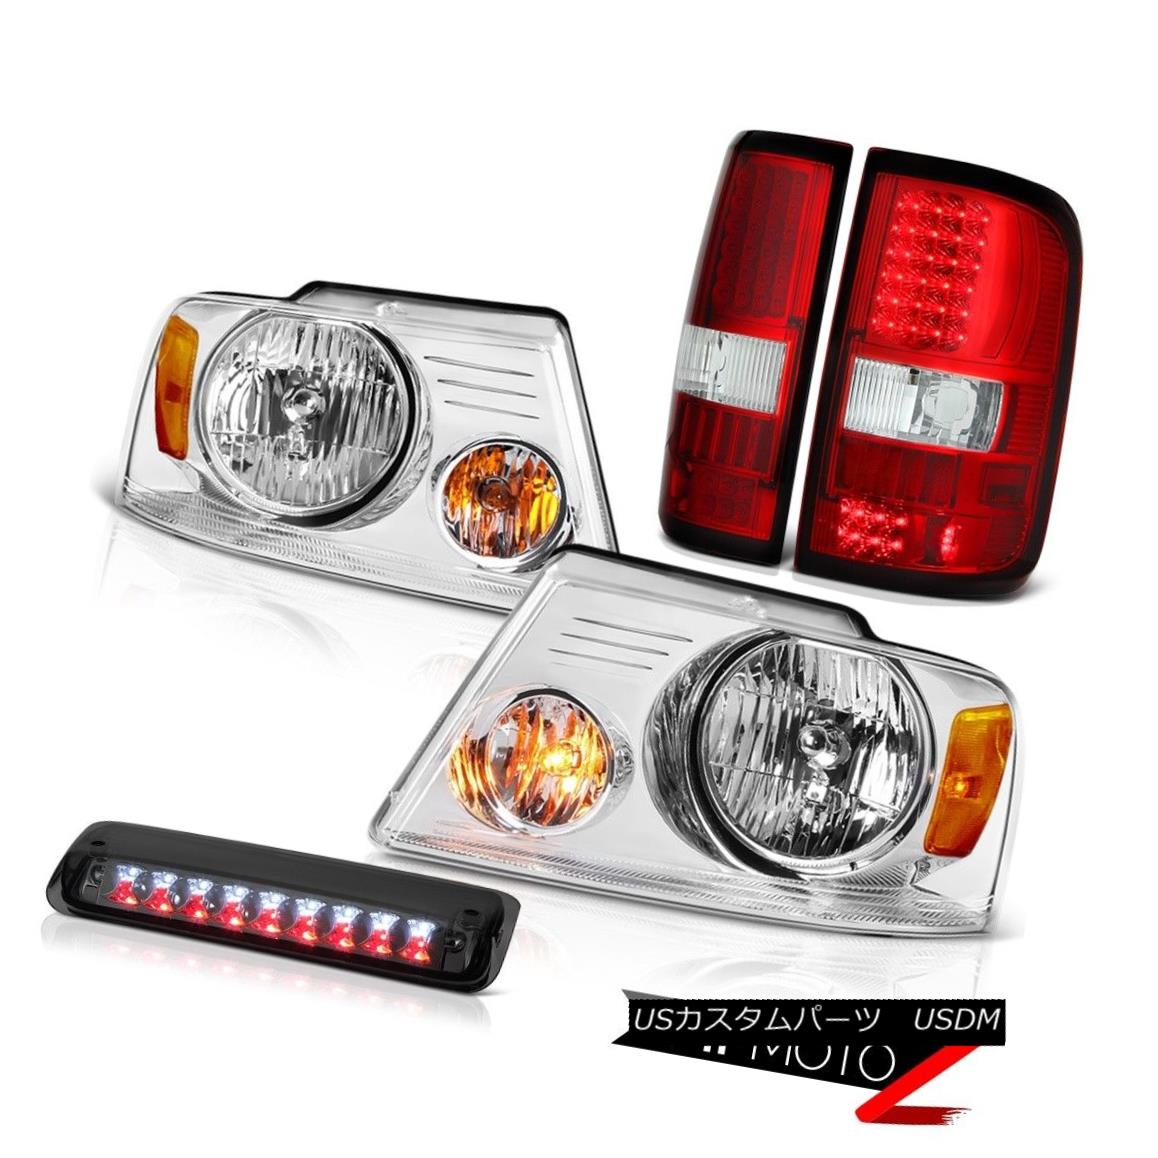 テールライト 2004-2008 Ford F150 STX Headlights 3RD Brake Lamp Tail Lights LED